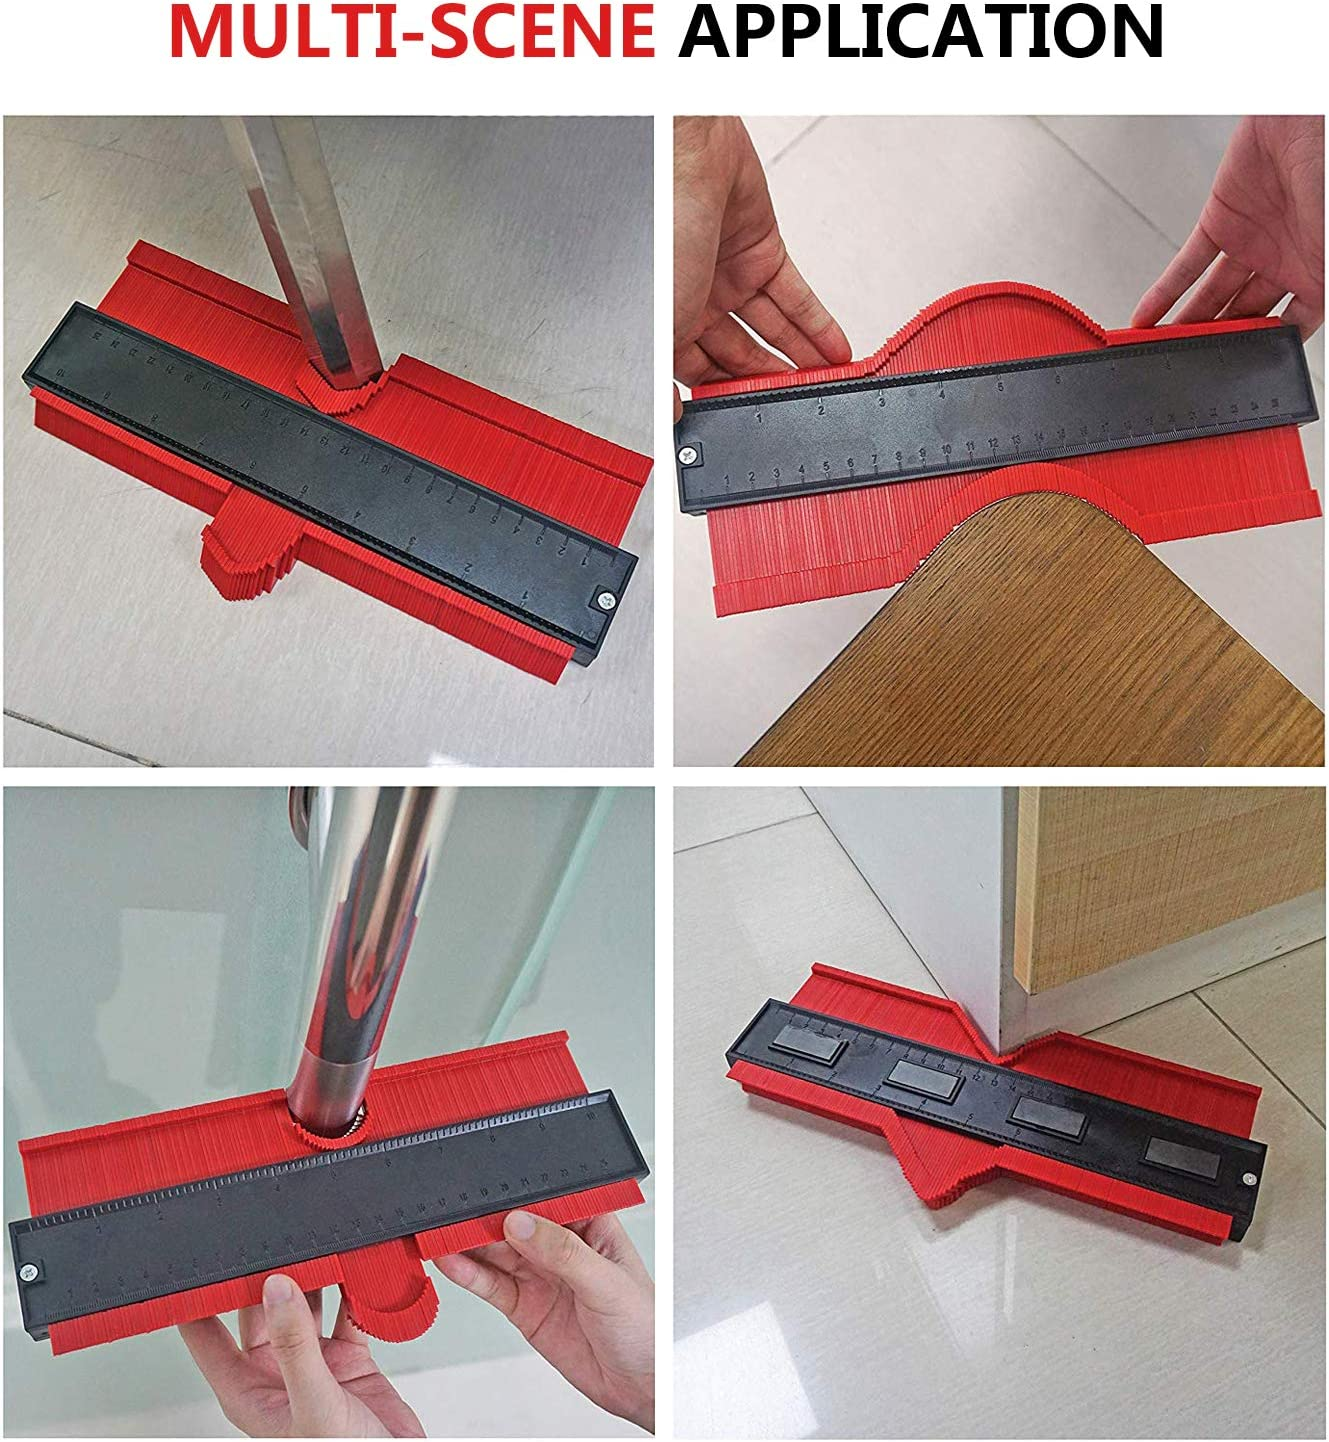 VALMIRI Contour Gauge Duplicator Shape Duplicator Precisely Copy Irregular Shapes,Perfect Fit and Easy Cutting Woodworking Tool 10in and RED